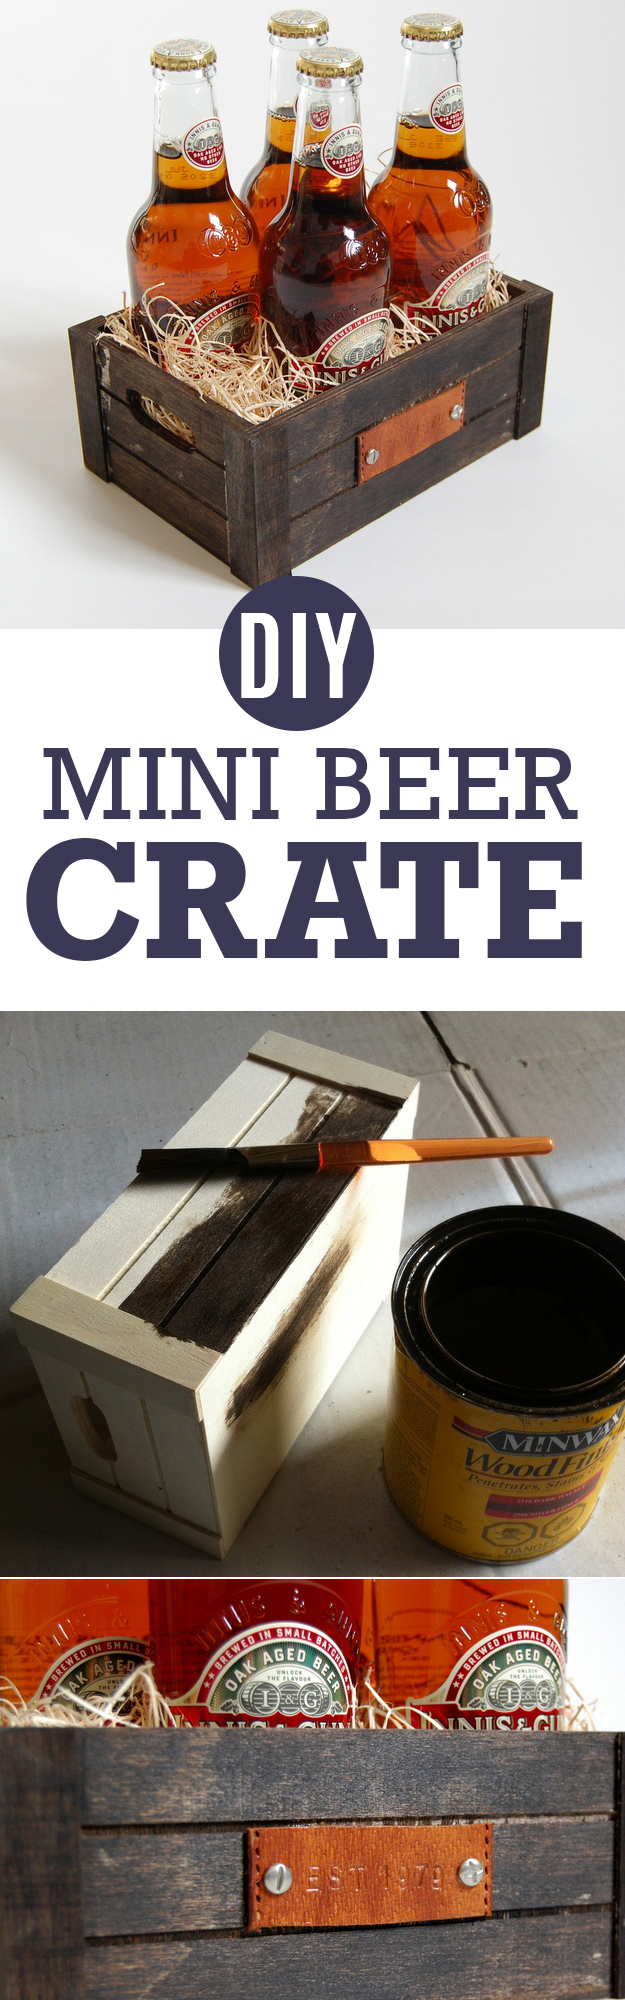 DIY Gifts For Men | Awesome Ideas for Your Boyfriend, Husband, Dad - Father , Brother and all the other important guys in your life. Cool Homemade DIY Crafts Men Will Truly Love to Receive for Christmas, Birthdays, Anniversaries and Valentine's Day | Personalized-Mini-Beer-Crate |